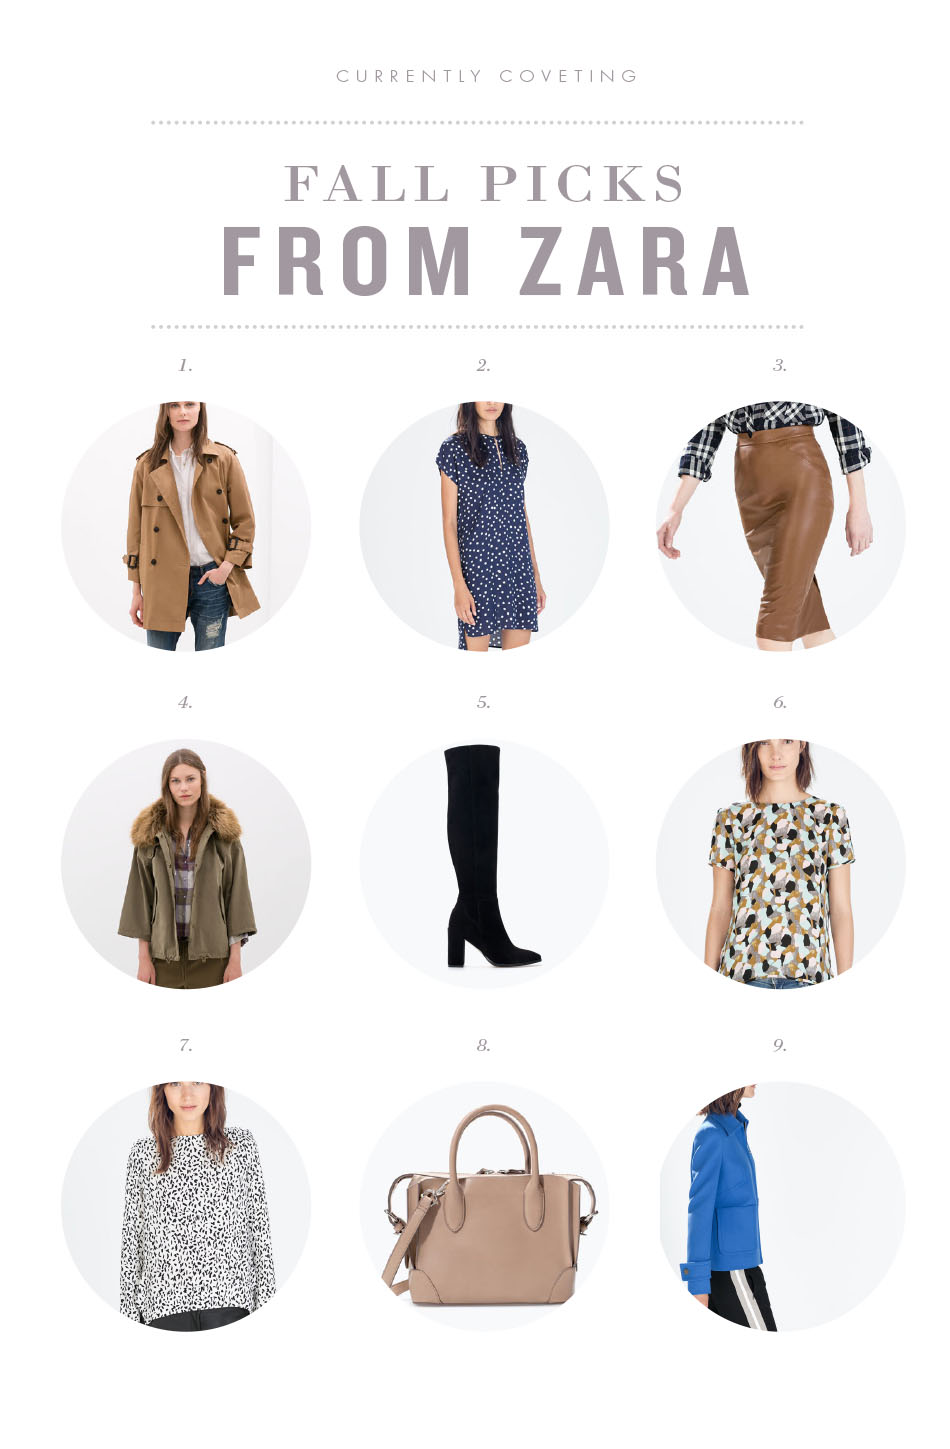 FALL PICKS FROM ZARA